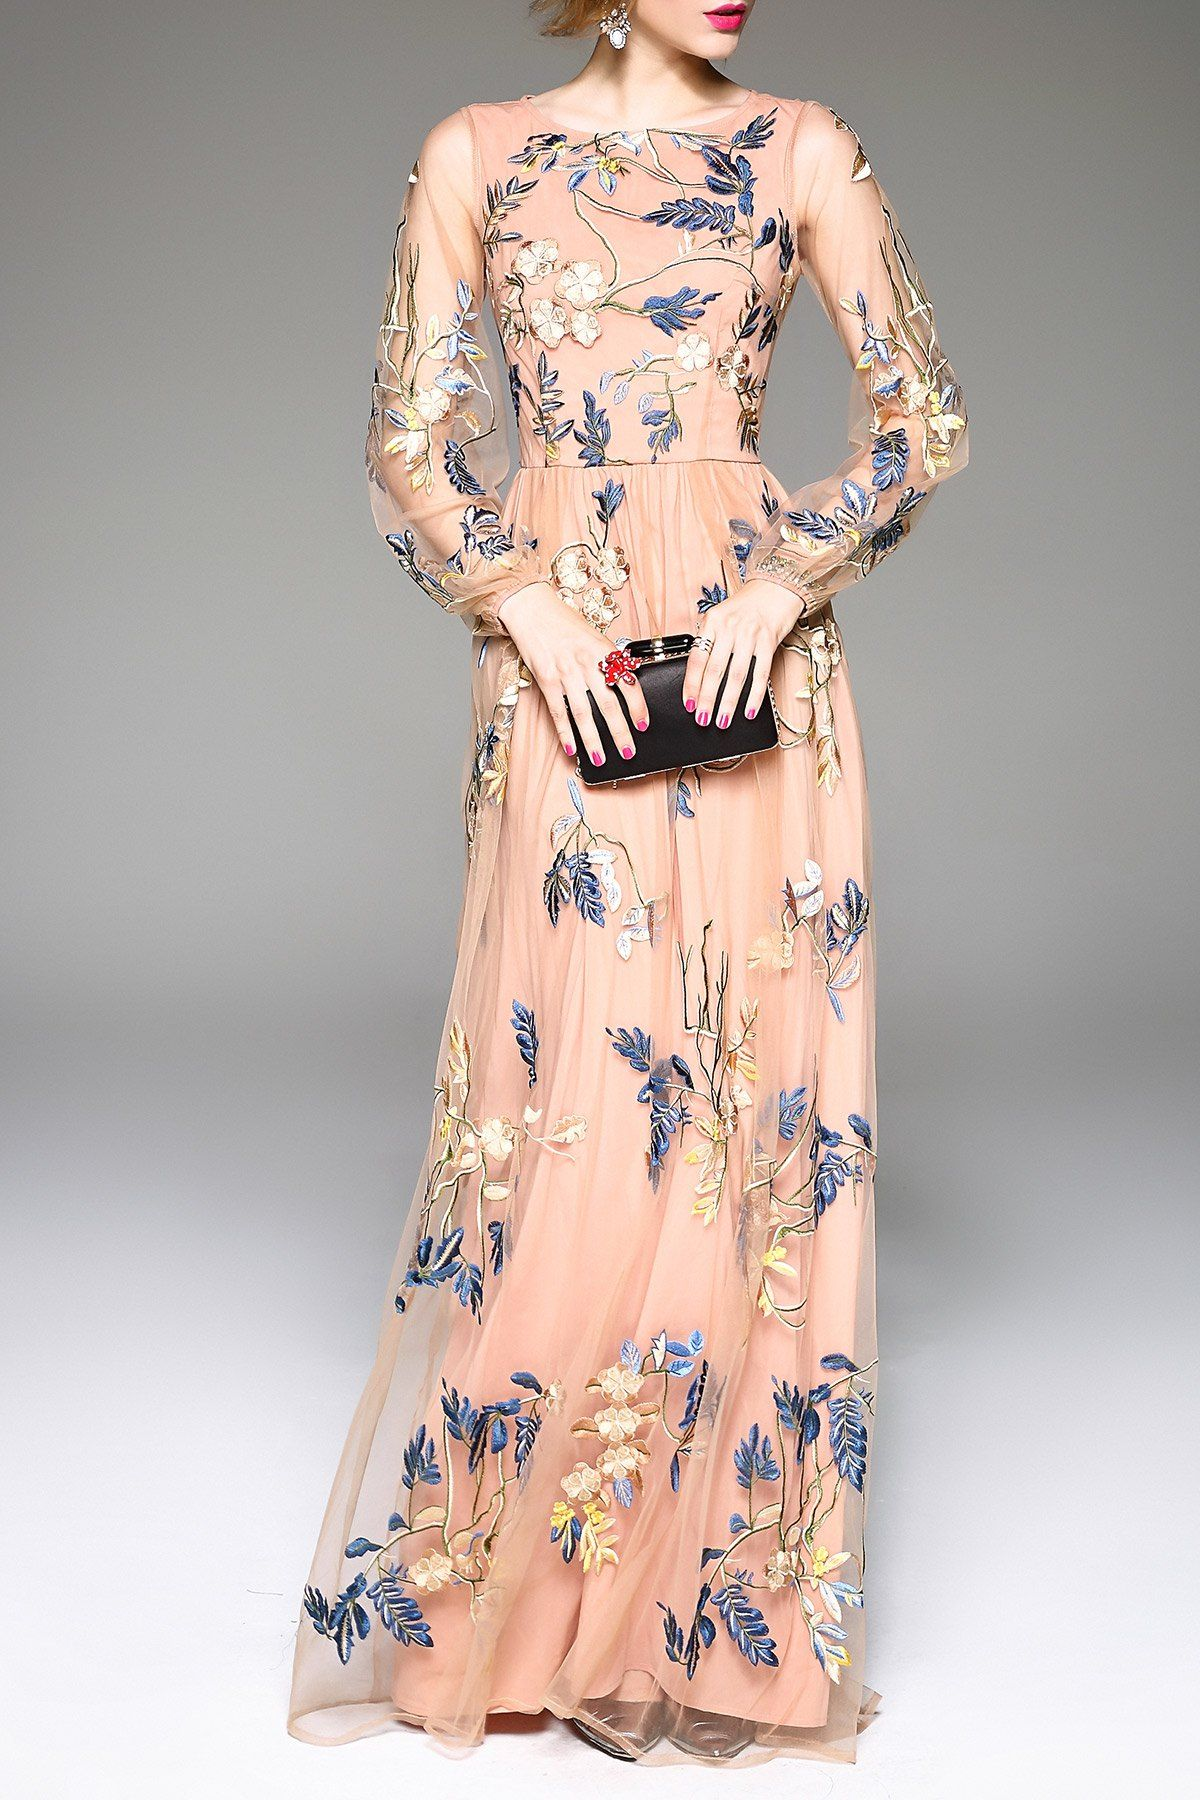 Blacktang Pink Embroidered Gauze Spliced Prom Dress | Evening Dresses at DEZZAL